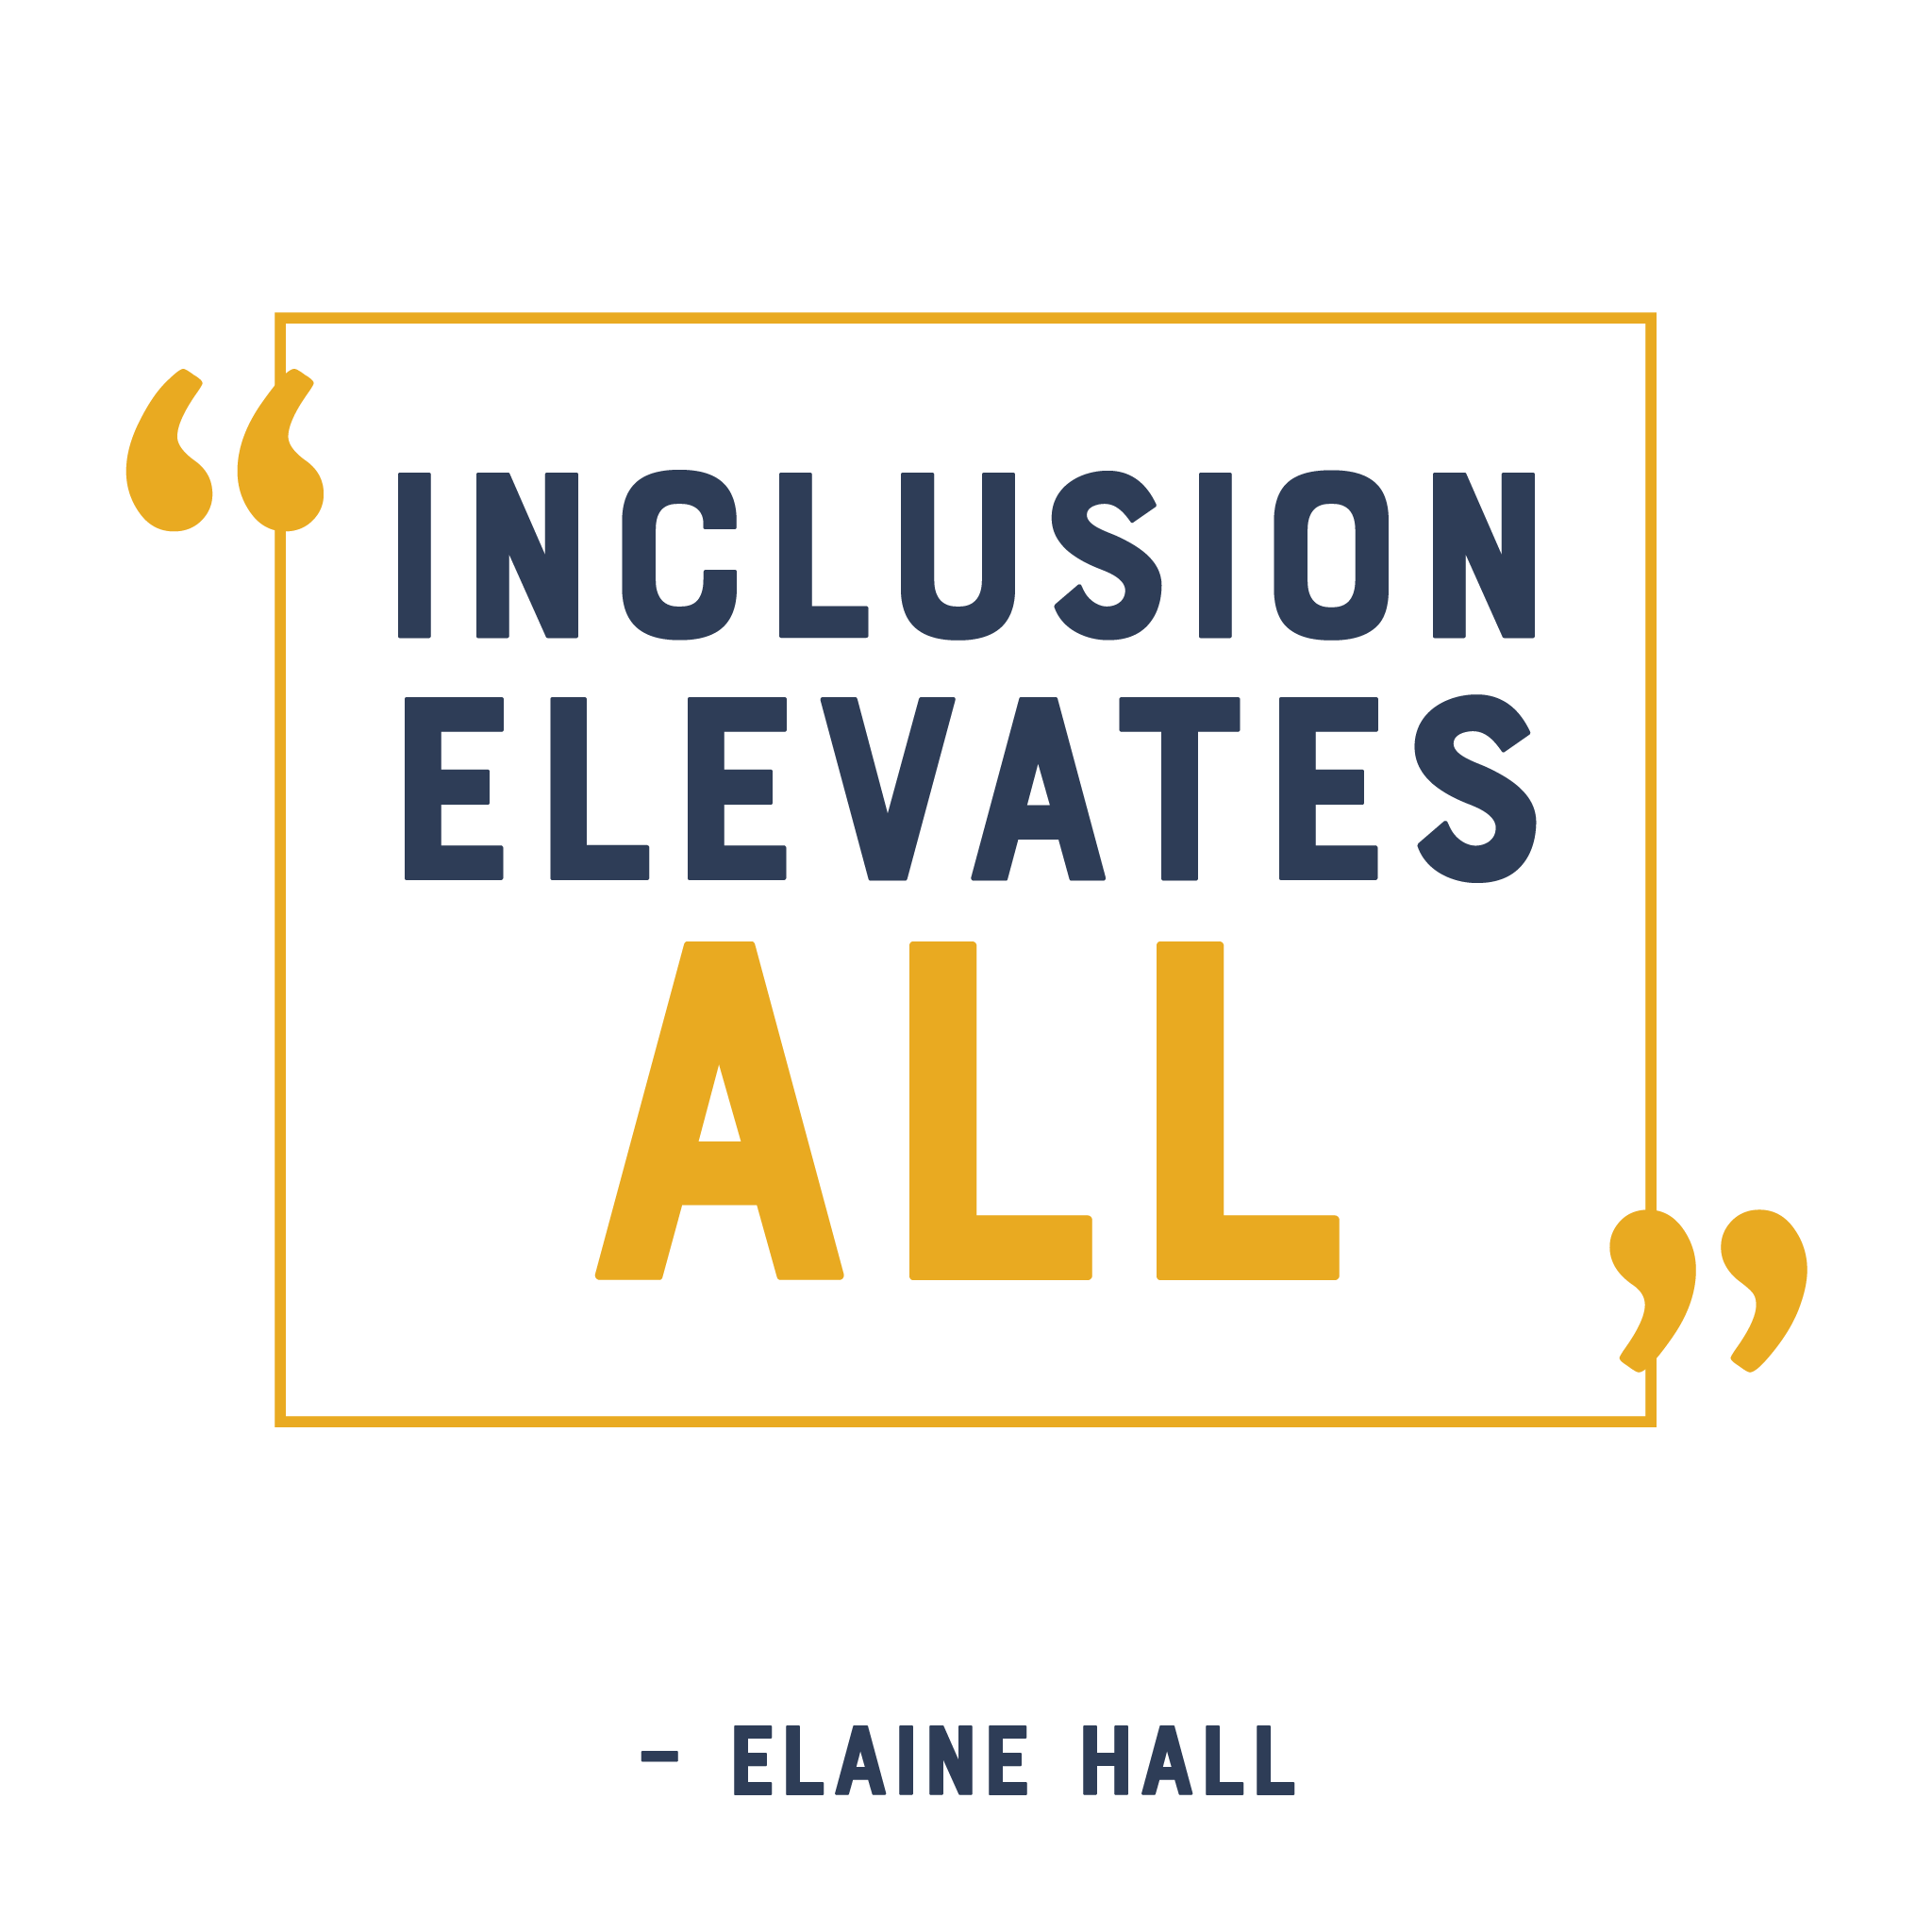 """Inclusion elevates all"" - Elaine Hall"